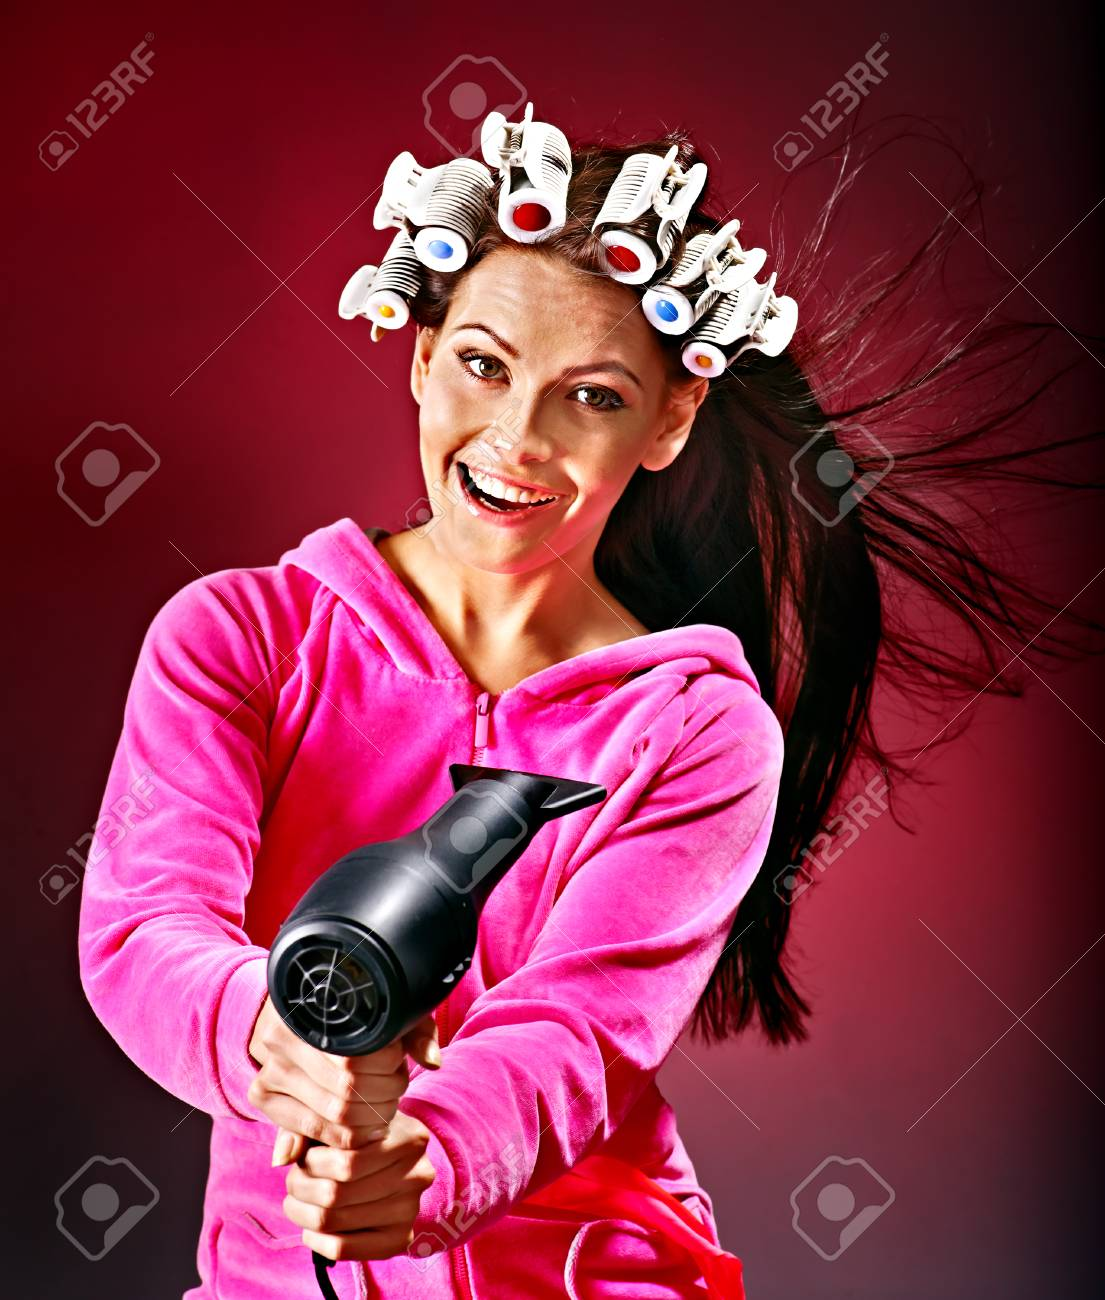 Happy woman wear hair curlers holding  hairdryer. Stock Photo - 23356187